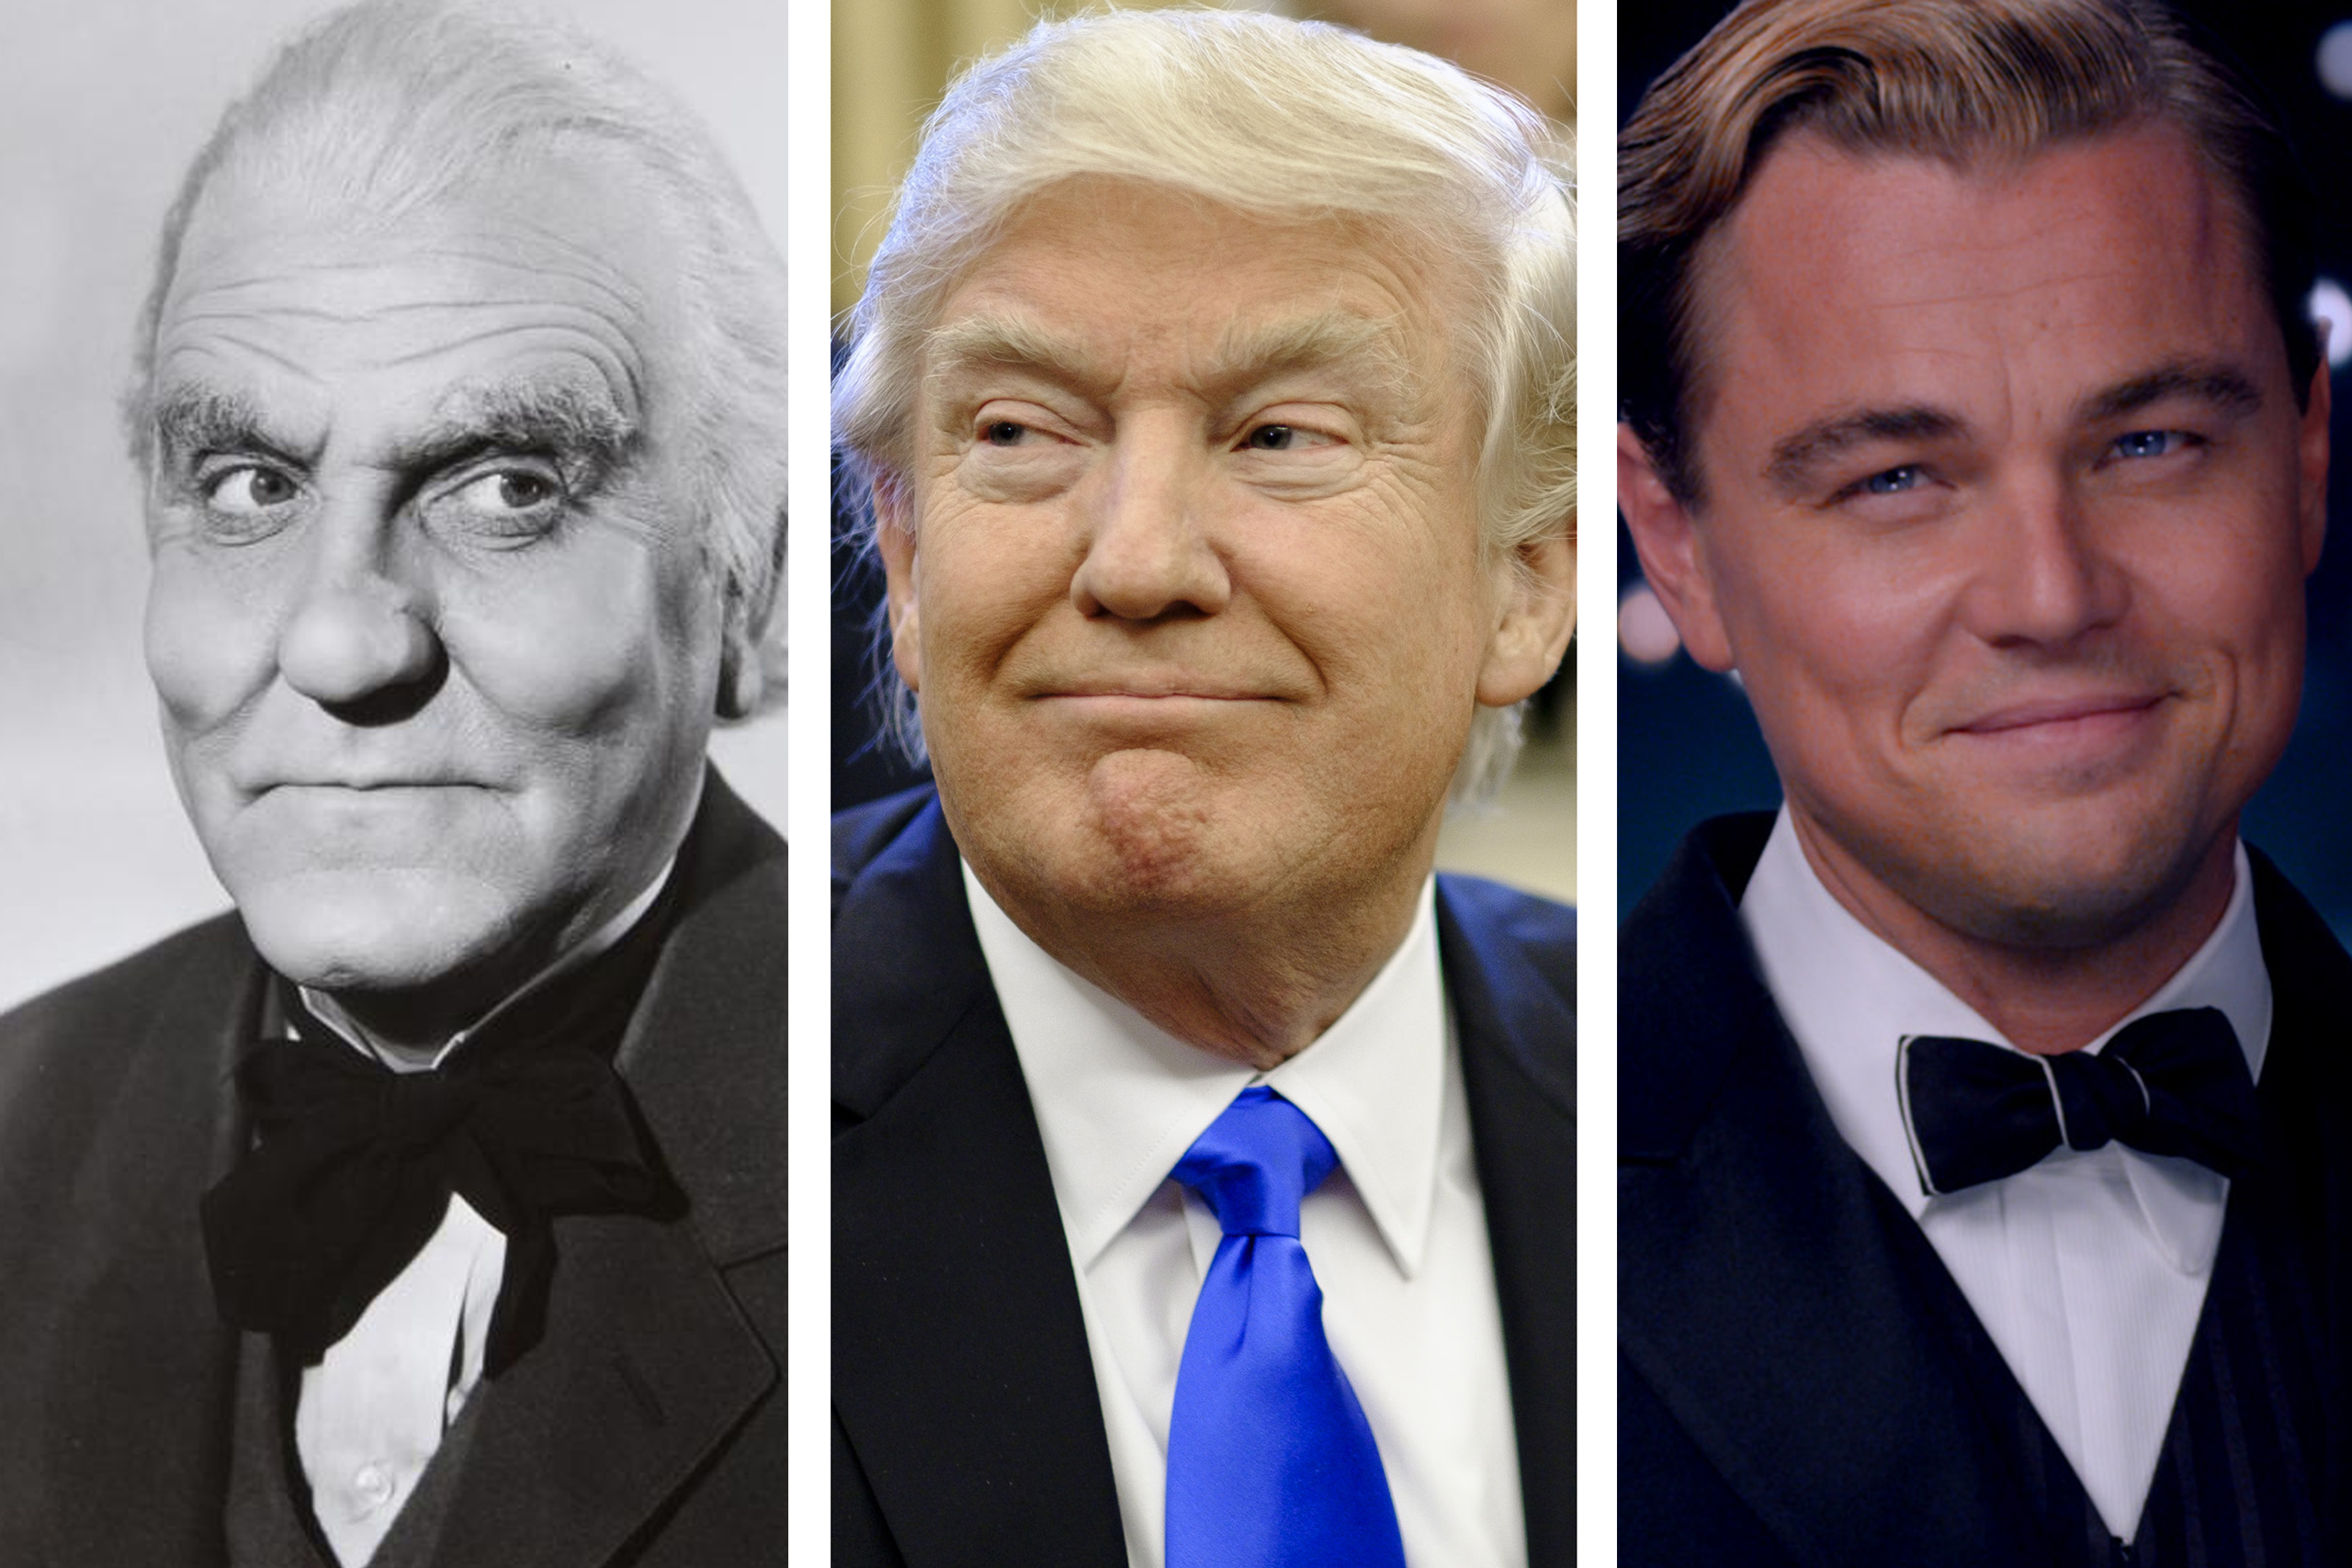 From left: Frank Morgan in The Wizard of Oz; President Donald Trump; Leonardo di Caprio in The Great Gatsby.